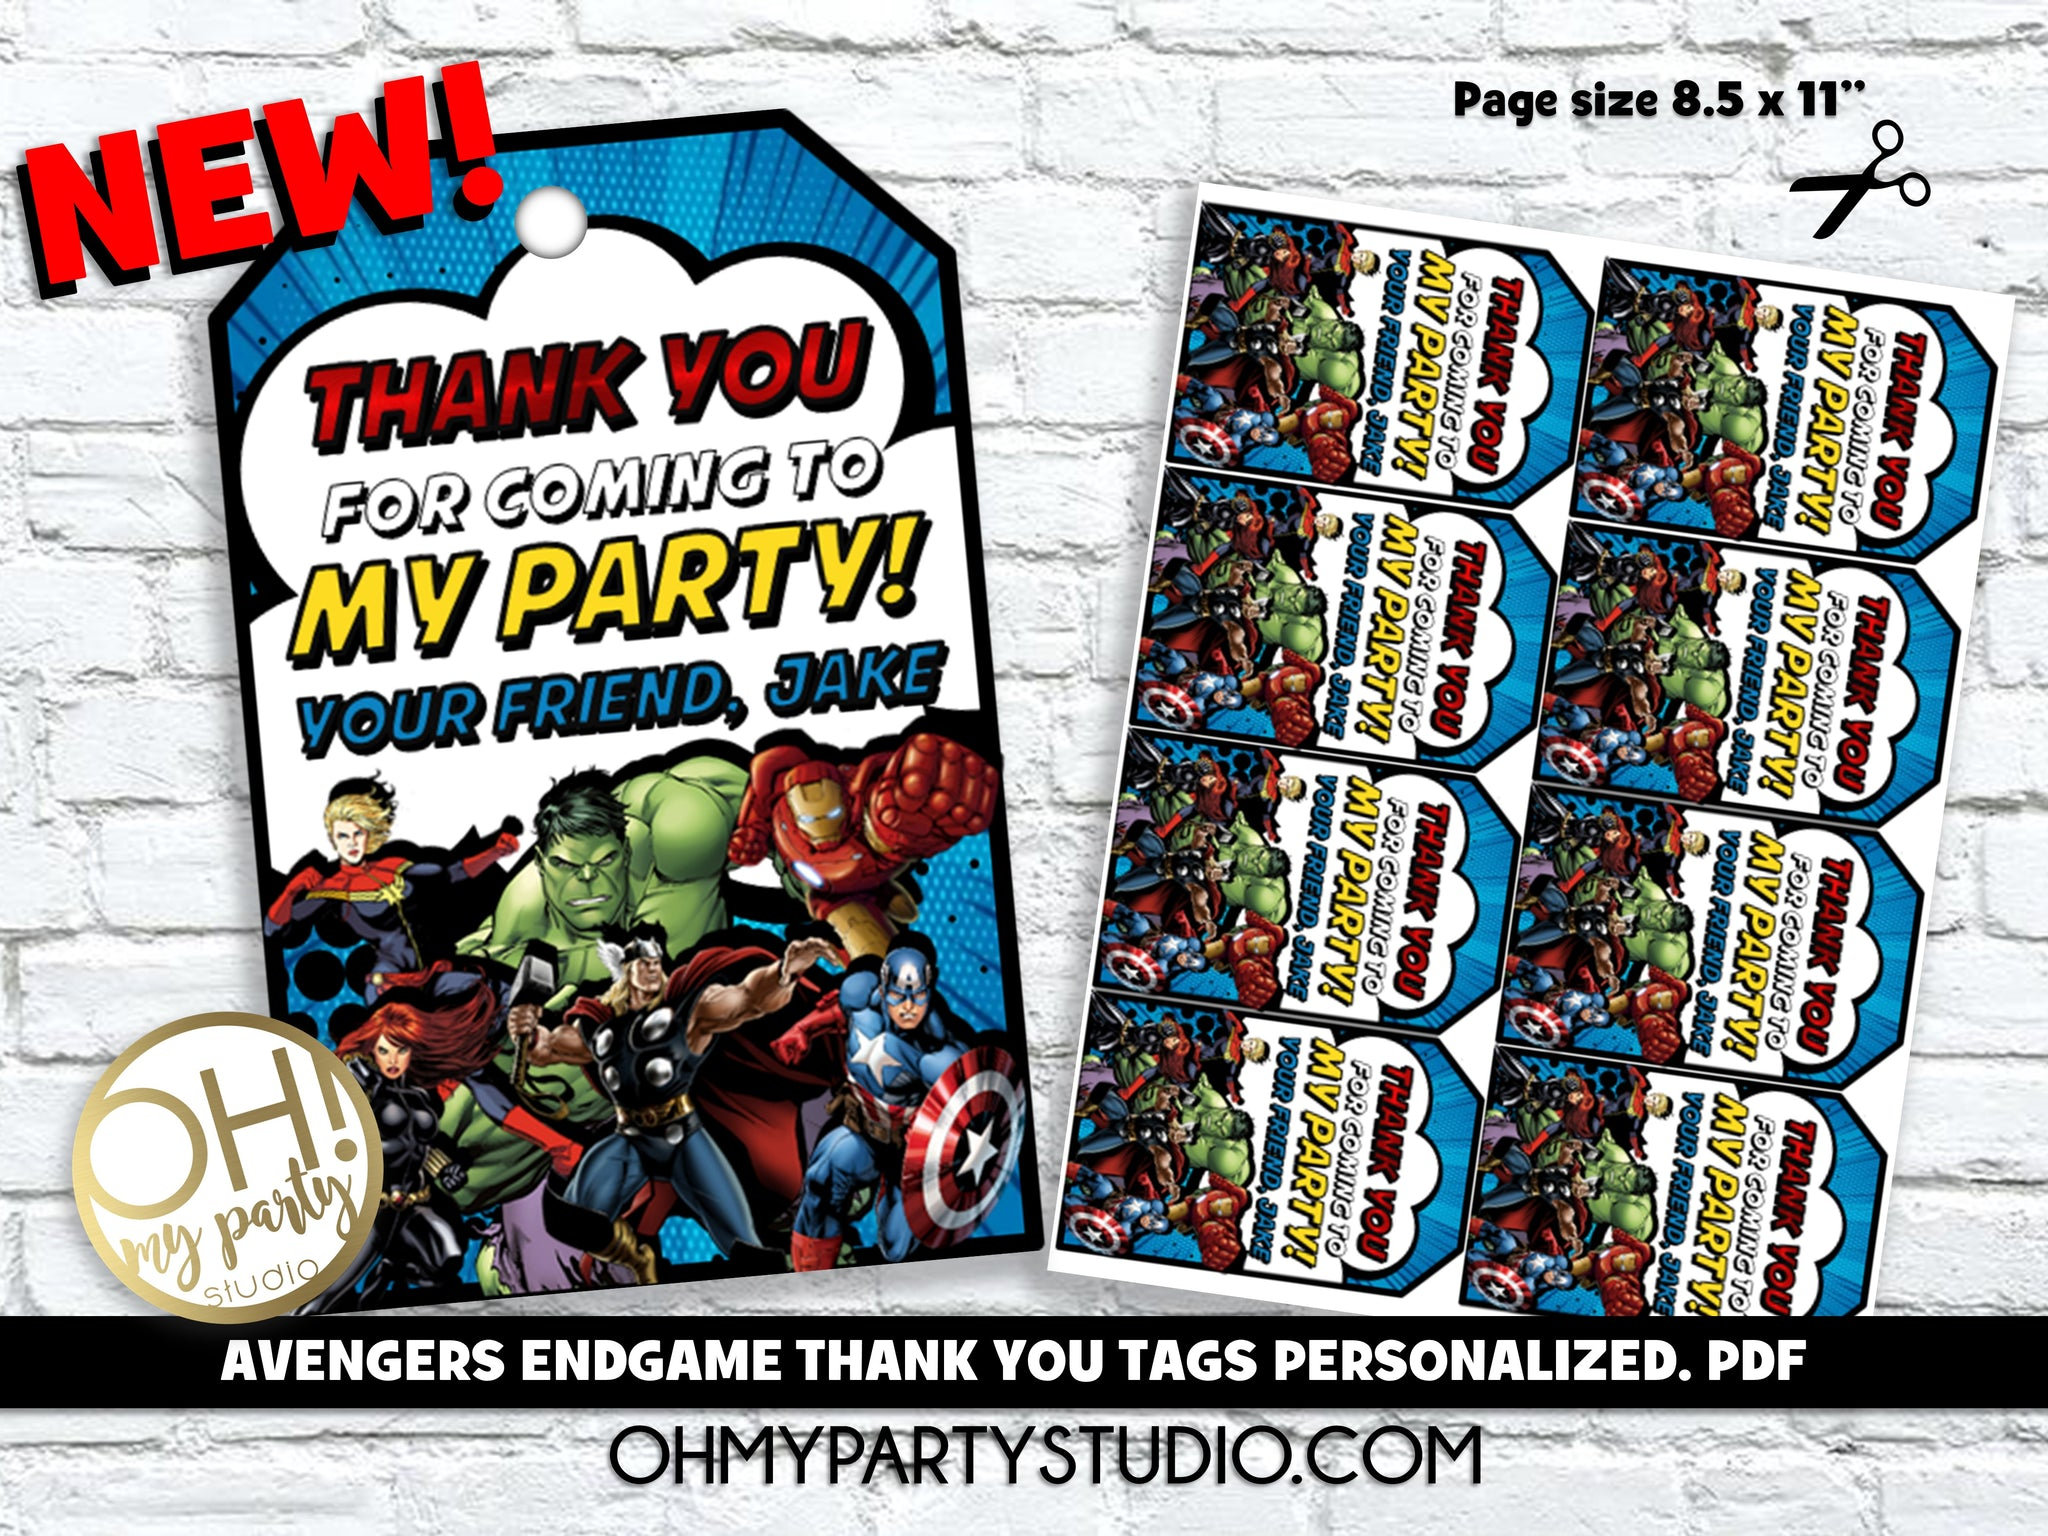 AVENGERS ENDGAME THANK YOU TAGS WITH NAME,AVENGERS ENDGAME THANK YOU TAGS, AVENGERS ENDGAME THANK YOU TAGS PERSONALIZED, AVENGERS ENDGAME PARTY, AVENGERS ENDGAME BIRTHDAY, AVENGERS ENDGAME TAGS, AVENGERS ENDGAME INVITATION, AVENGERS ENDGAME PARTY IDEAS